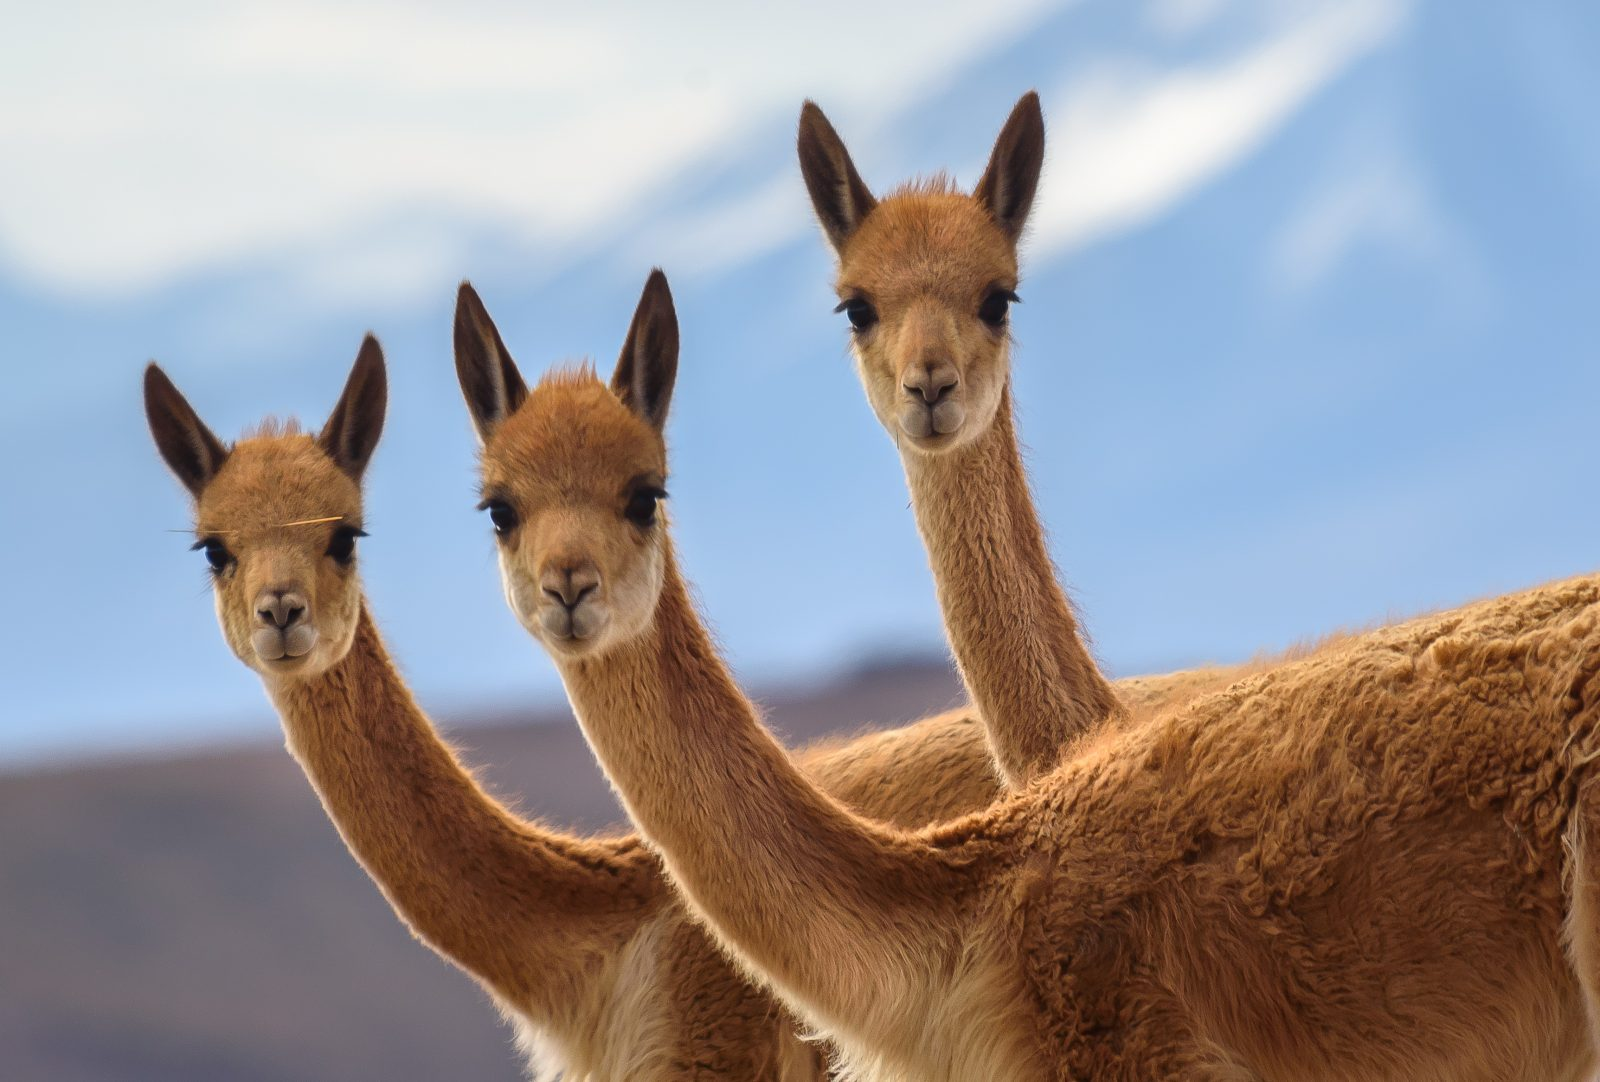 Three curious Vicuñas posing for the photo